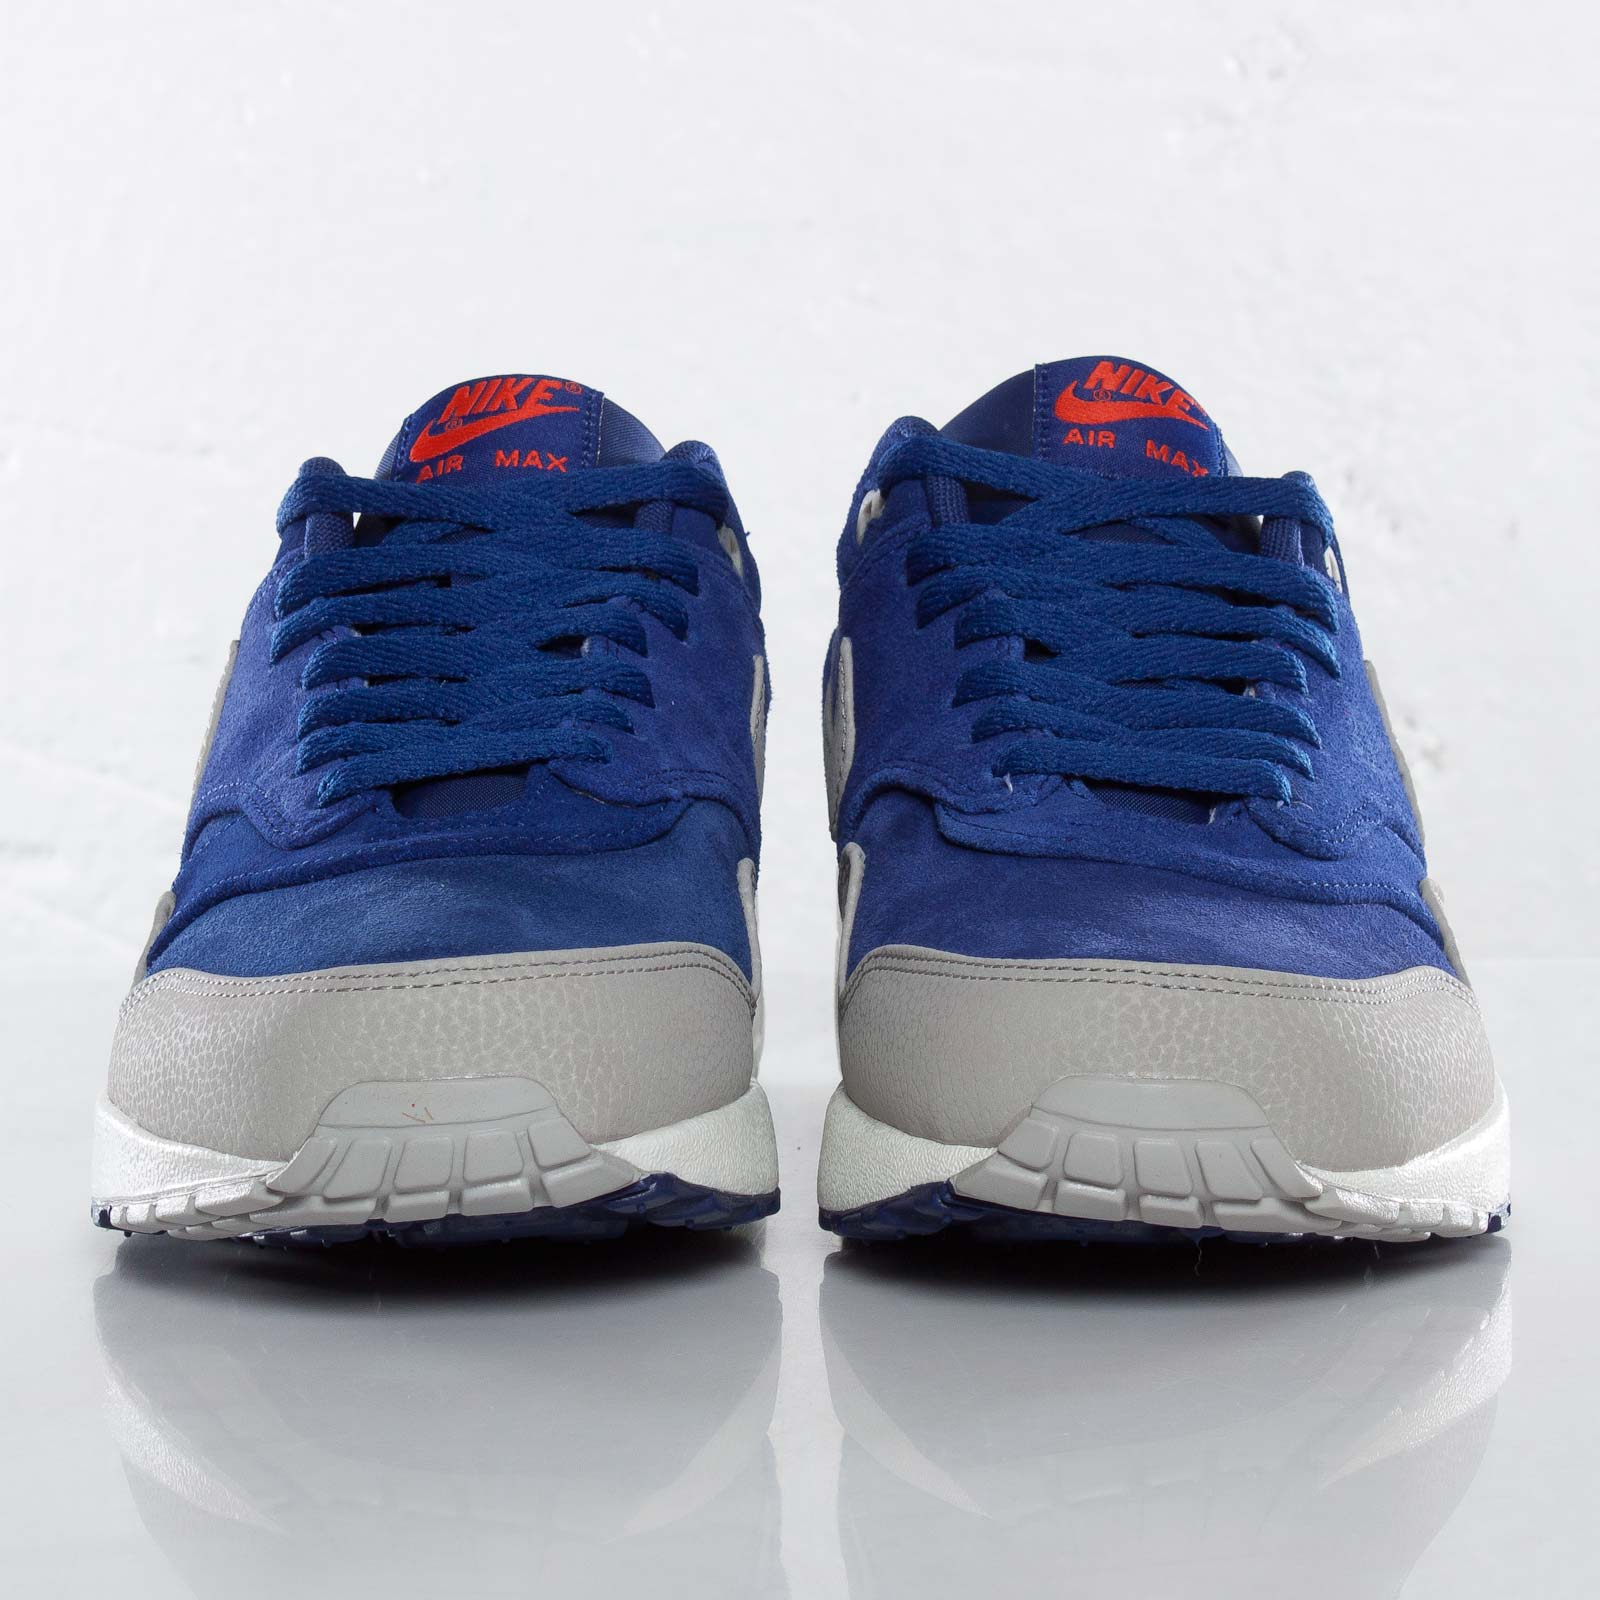 the best attitude a140f 9fa56 Nike Air Max 1 Premium - 512033-408 - Sneakersnstuff   sneakers    streetwear online since 1999